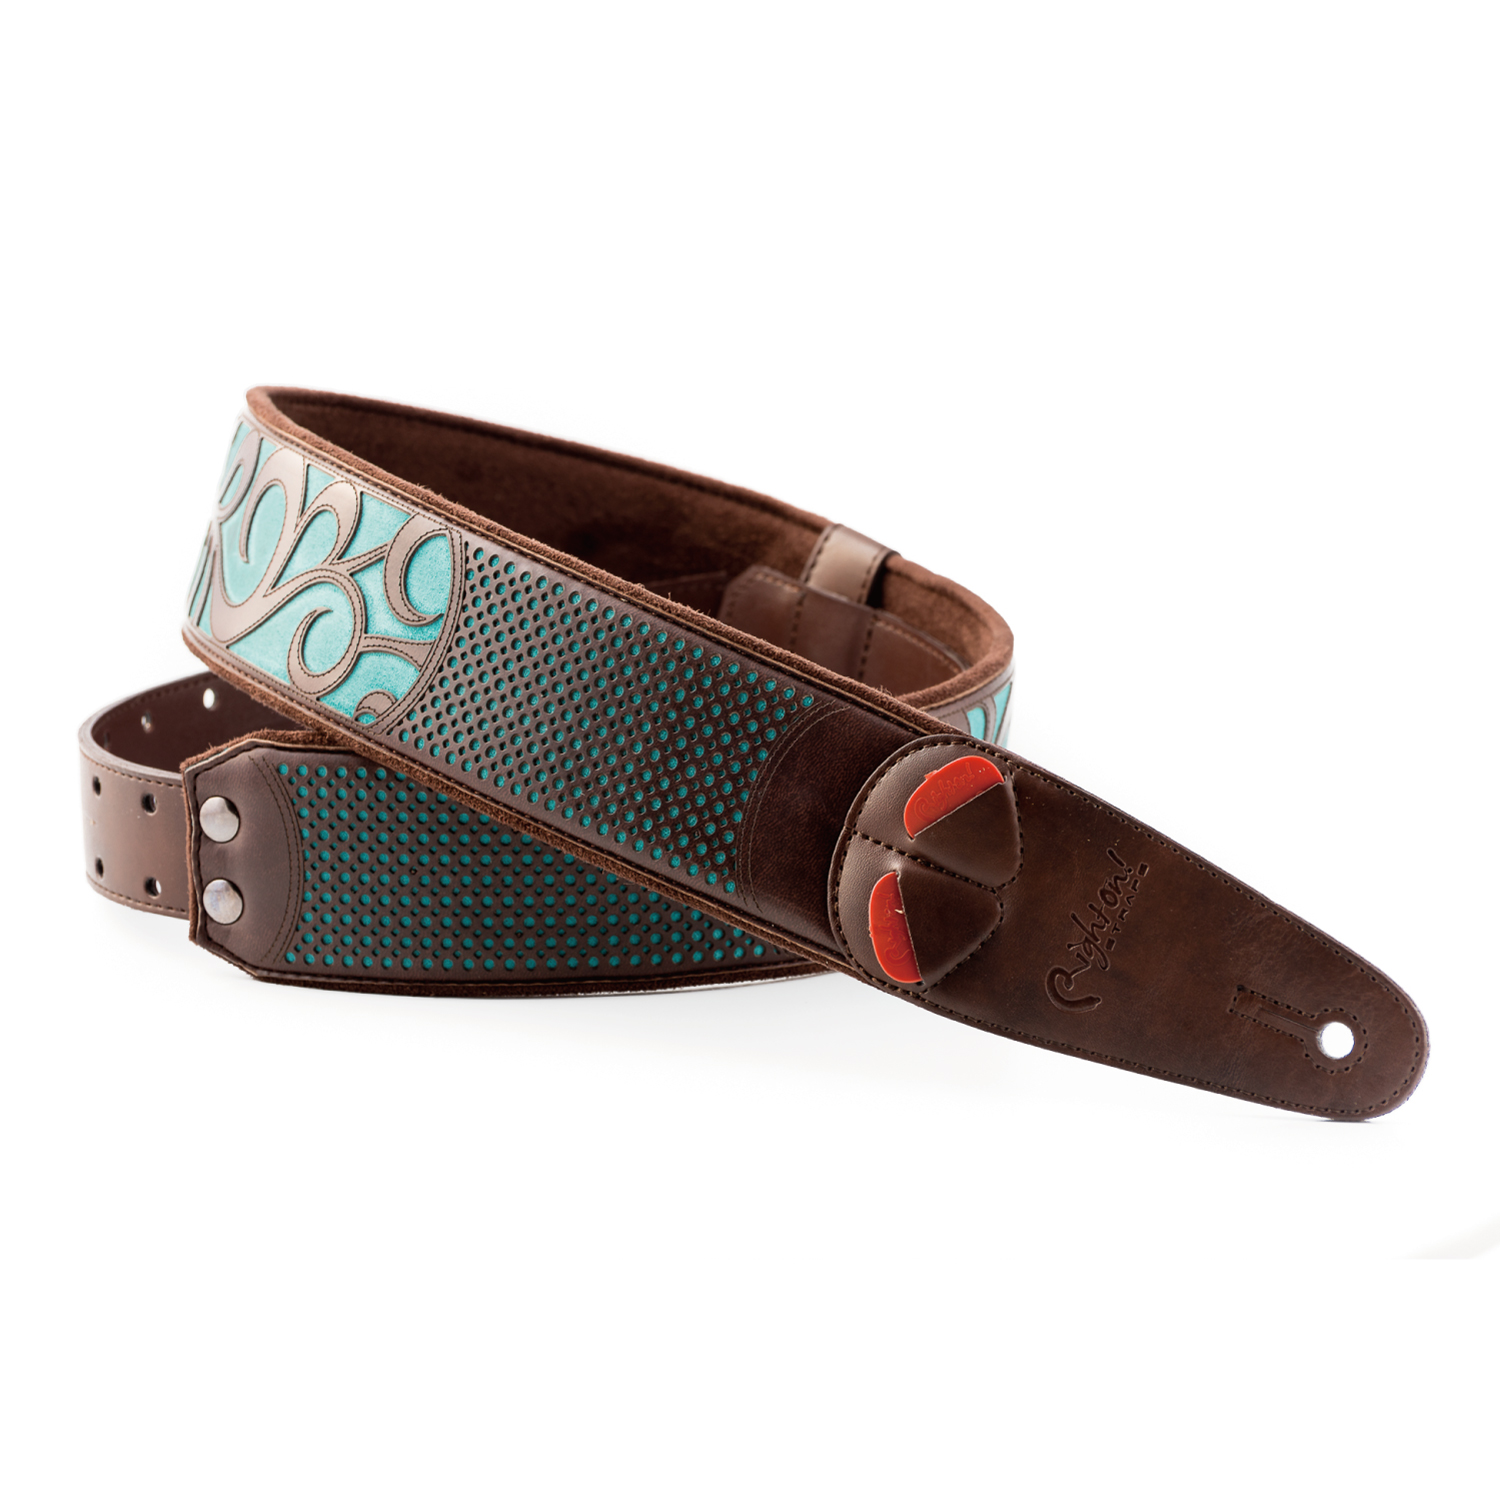 MOJO-NASHVILLE-TEAL-RIGHTONSTRAPS-(3)1500